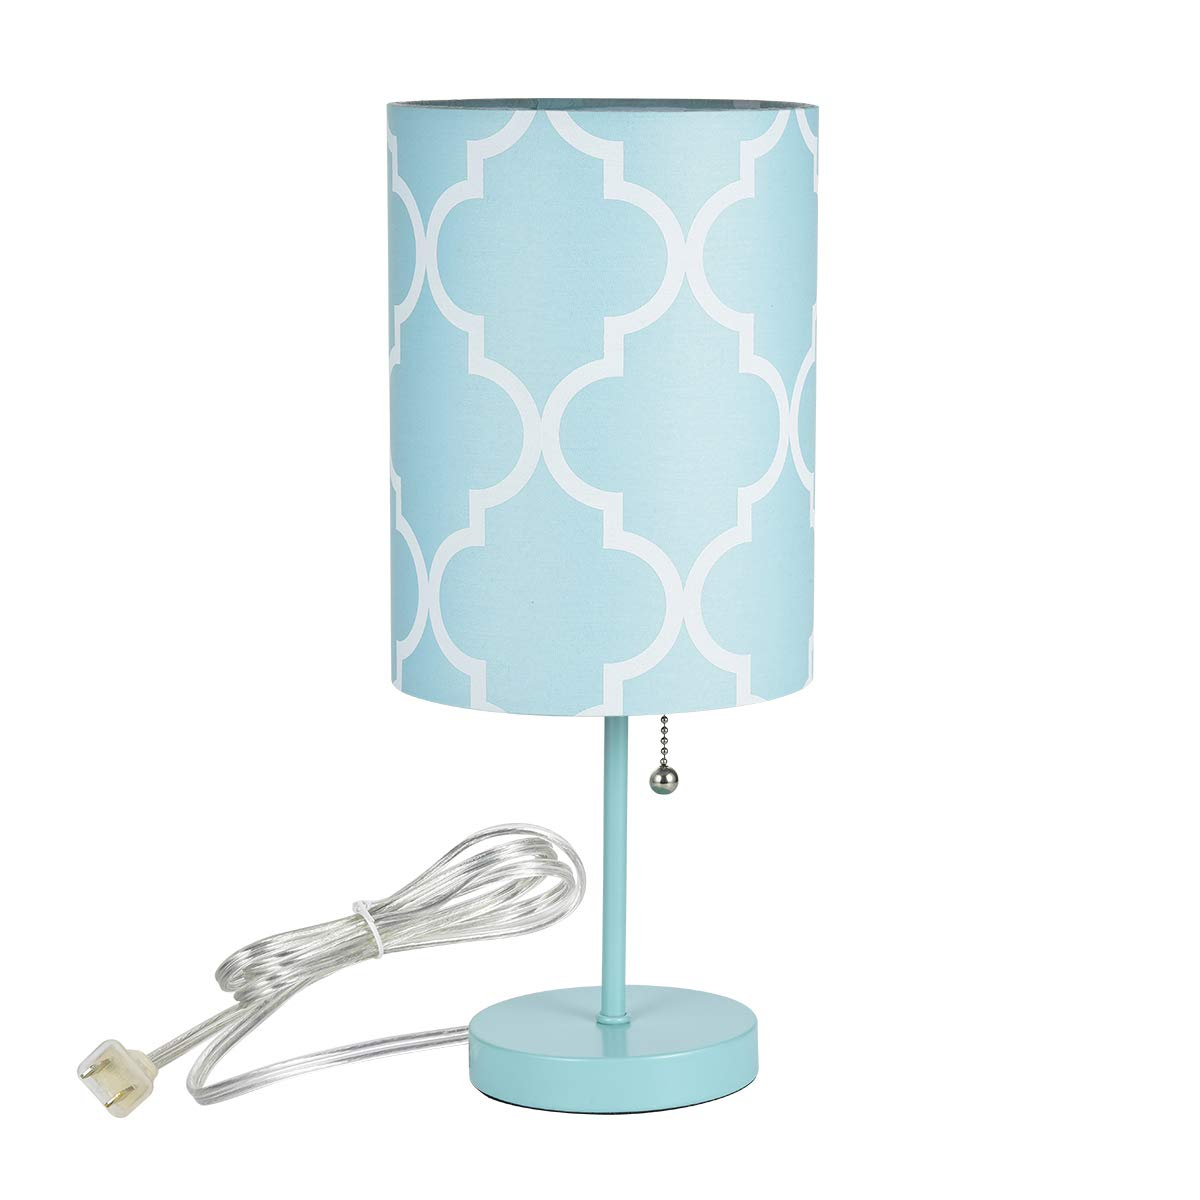 Bedside Table Lamp | Minimalist Table Lamp Bedside Desk Lamp with Round Flaxen Fabric Shade and Pull Chain Switch for Bedroom, Dresser, Living Room, Kids Room, College Dorm, Bookcase,Blue